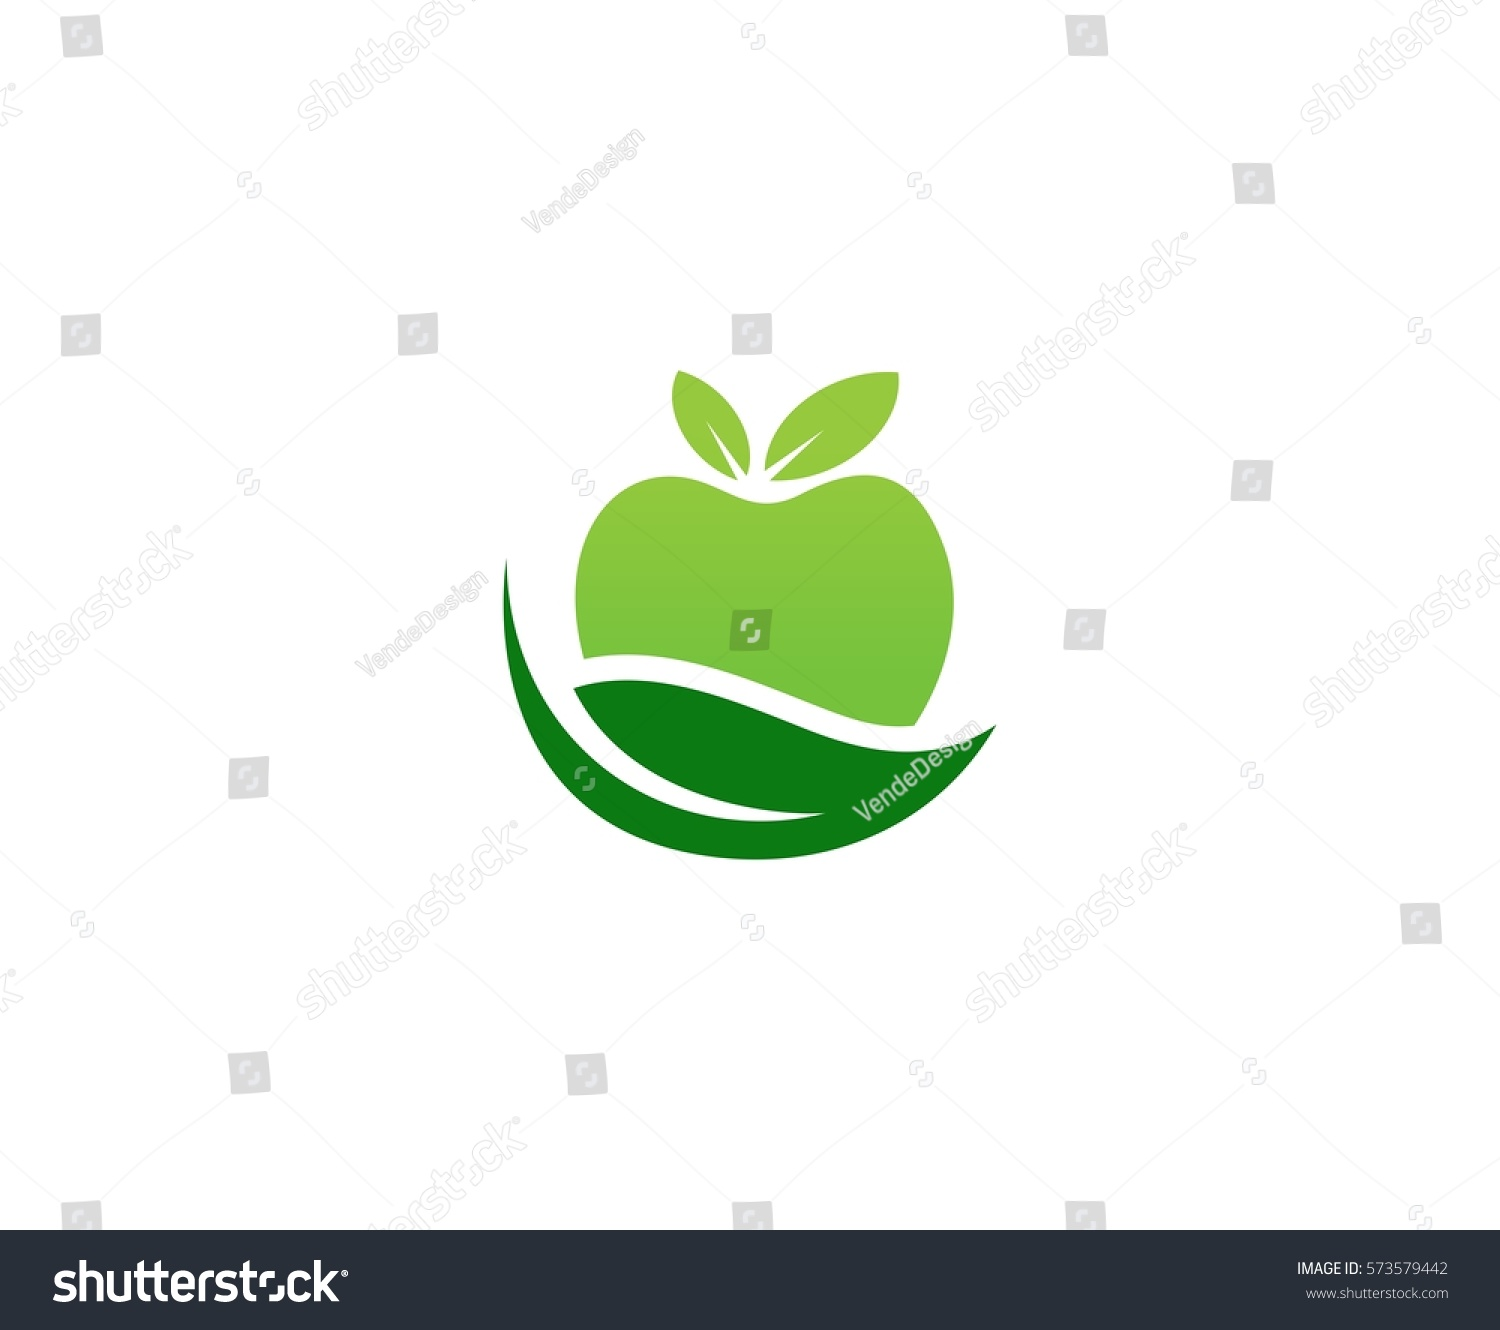 apple logo stock vector 573579442 - shutterstock